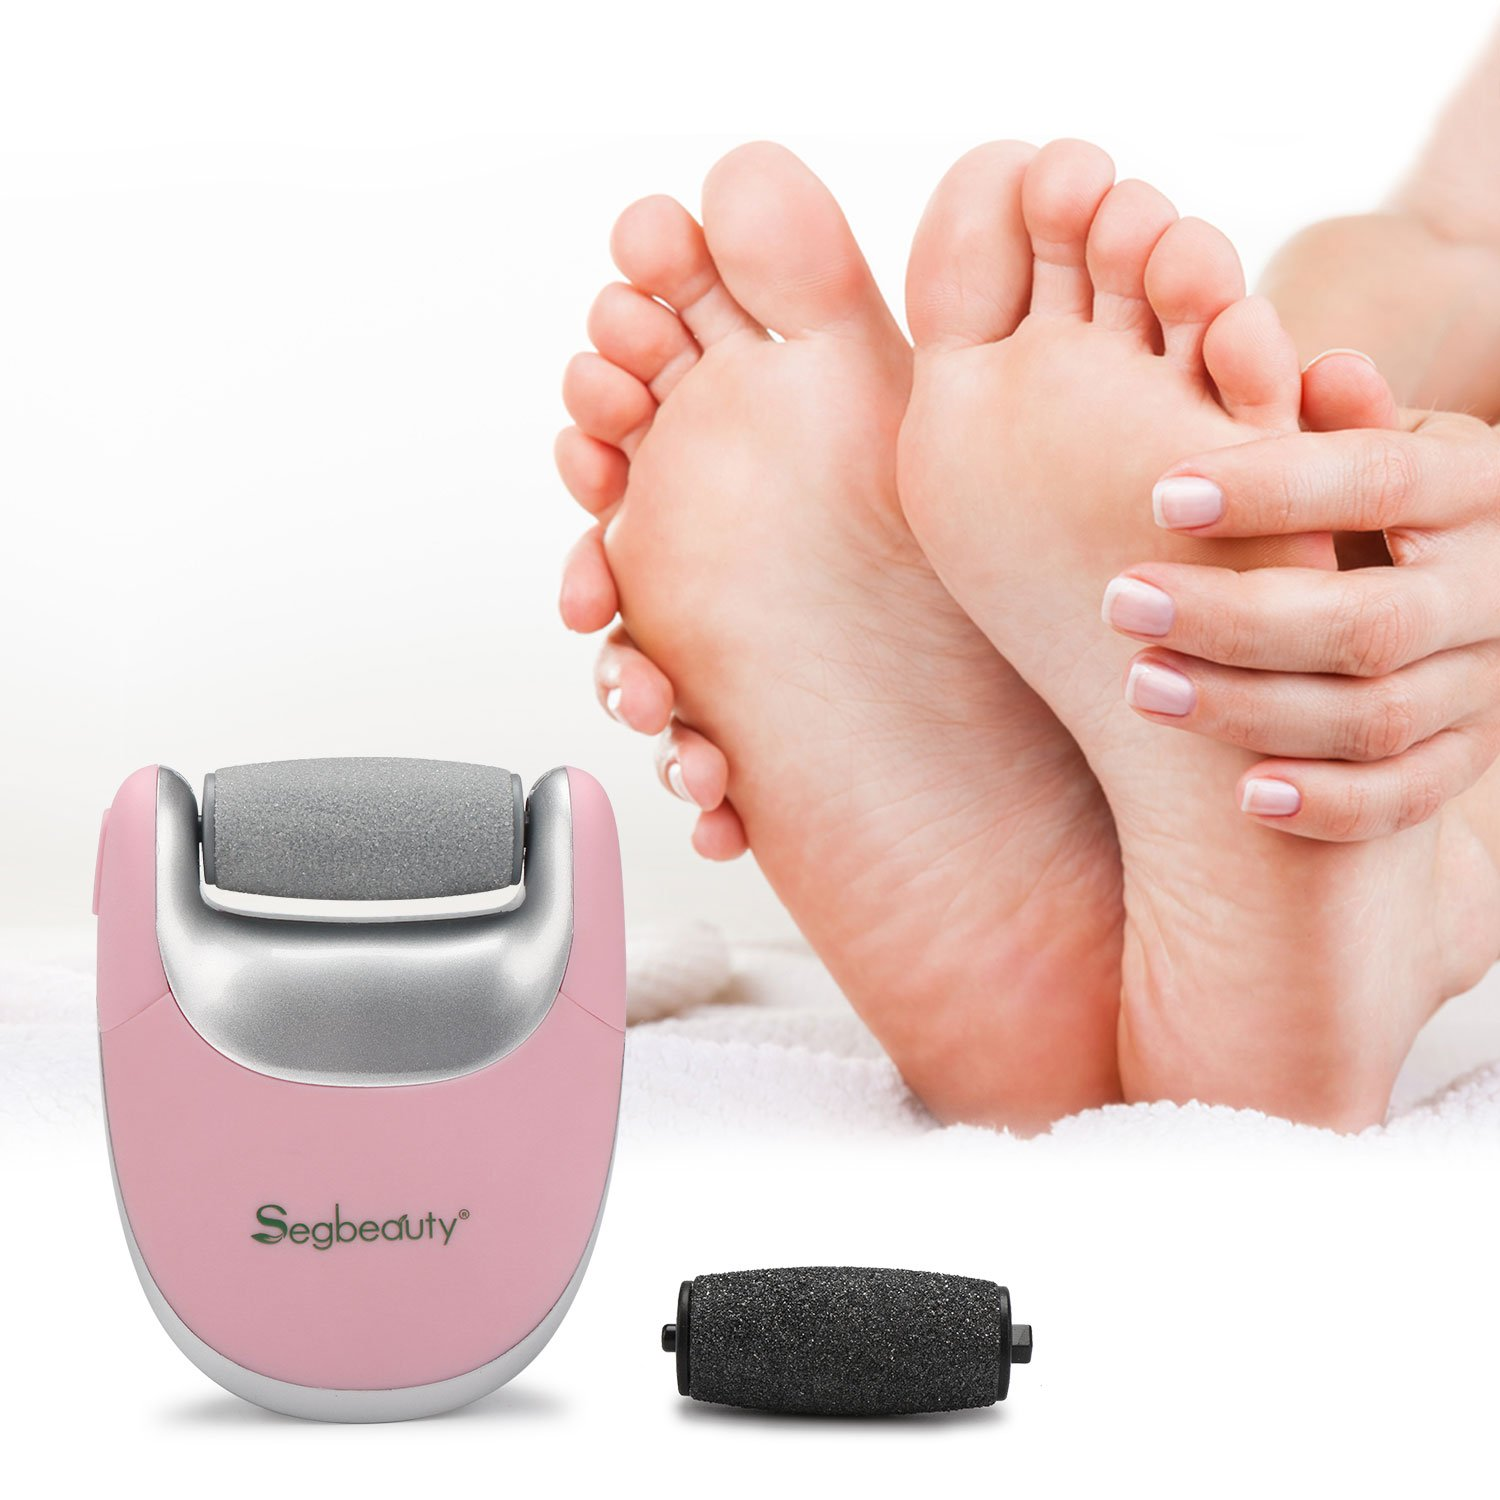 Segbeauty Elecric Callus Remover, Portable USB Rechargeable Pedicure Callus Instant Clear Remover, Travel Friendly, 2 Speeds Foot Care Callus Eliminator Foot File for Cracked Hard Dehisced Heels Skin by Segbeauty (Image #2)